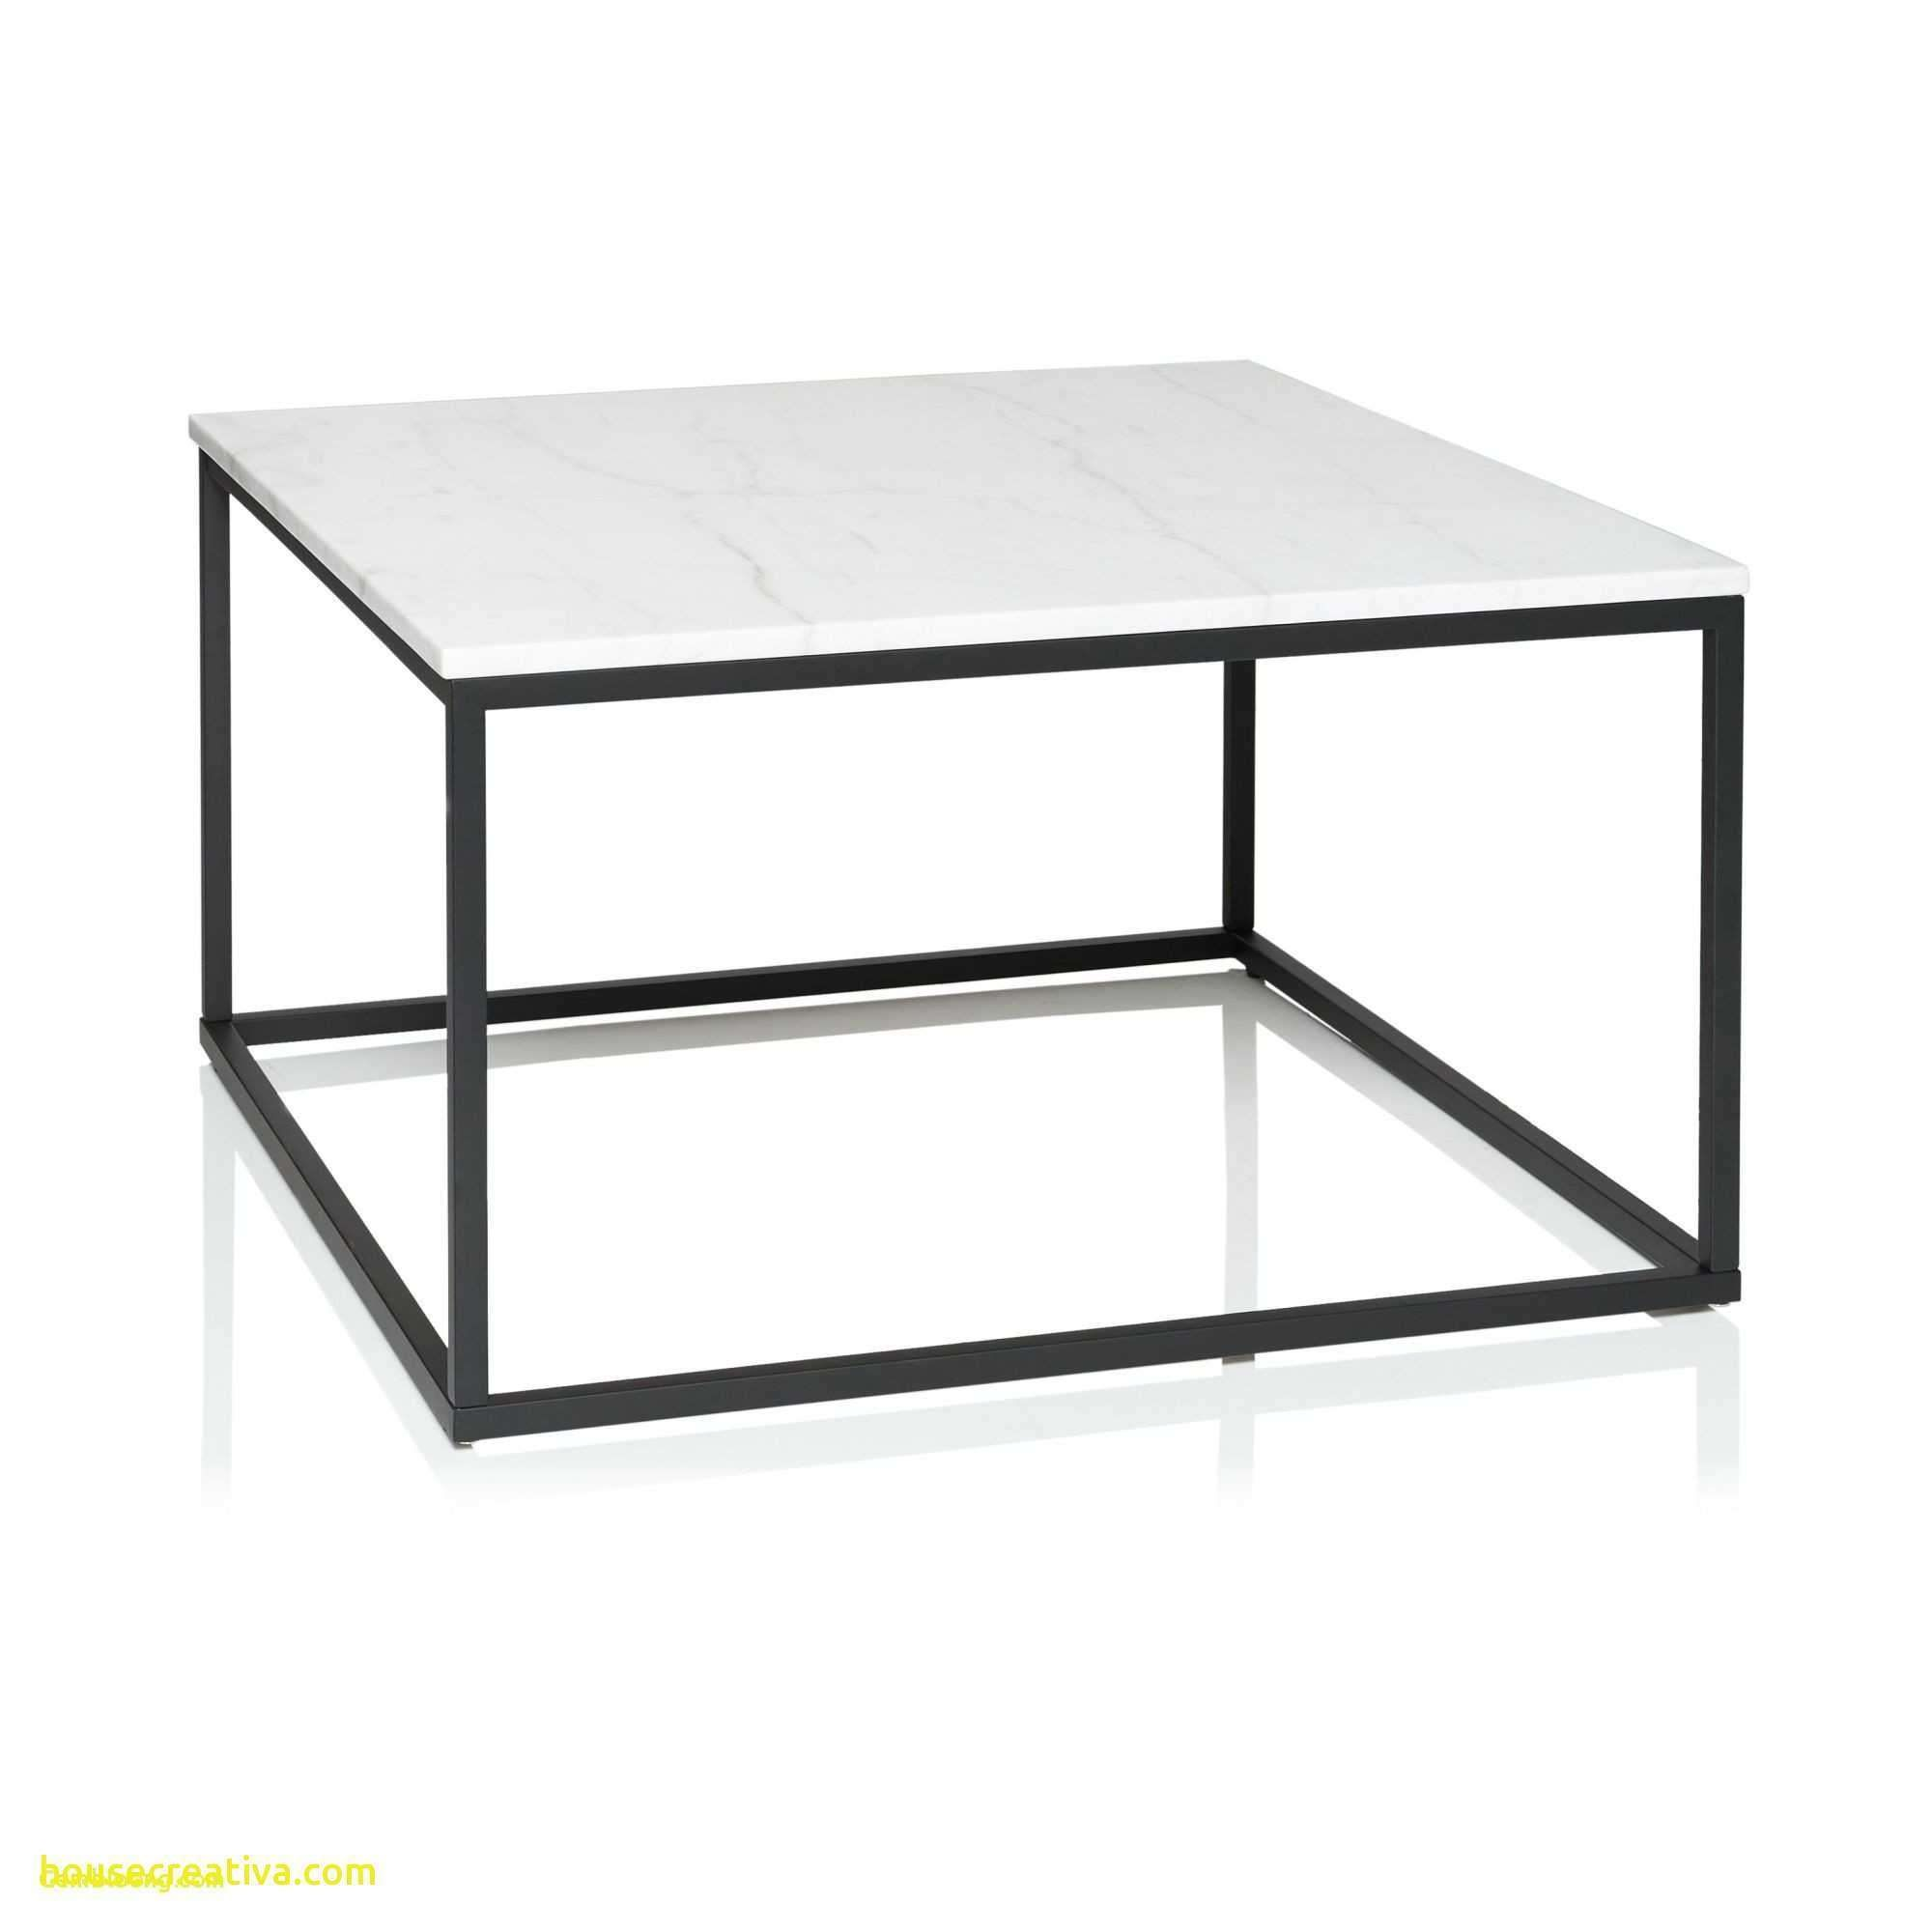 Elegant Square Coffee Tables Homedecoration Homedecorations